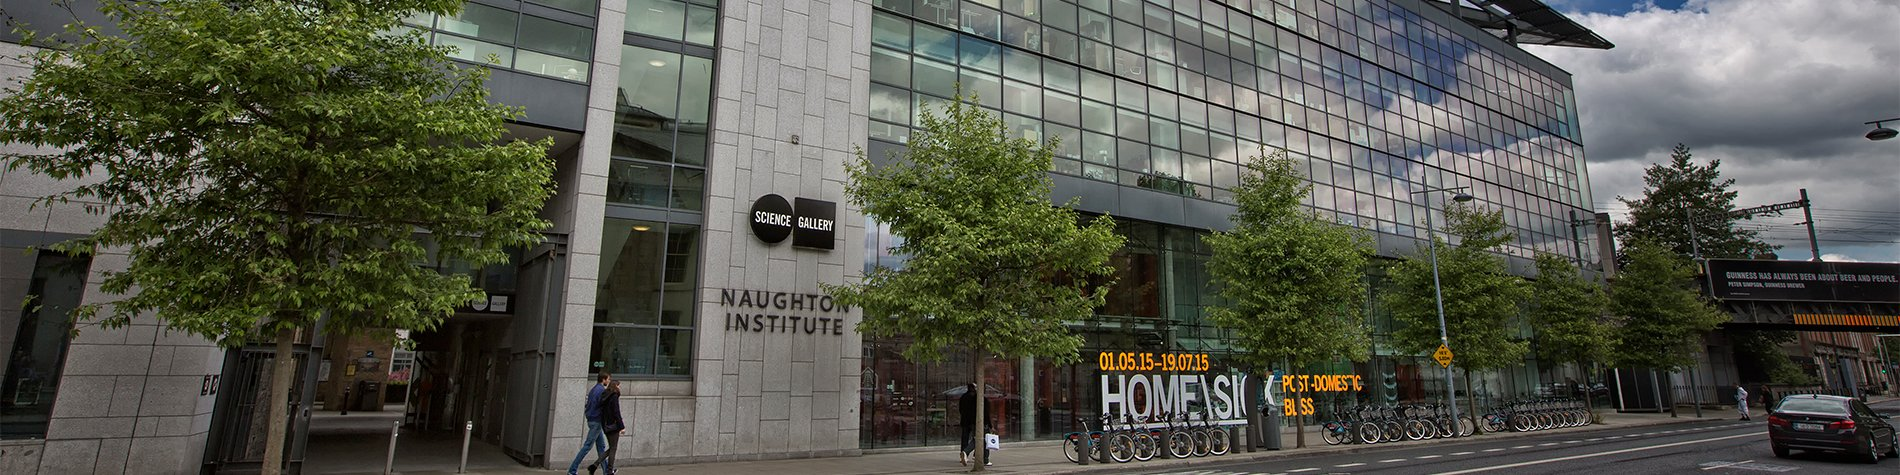 Naughton Institute Science Gallery Front on Street